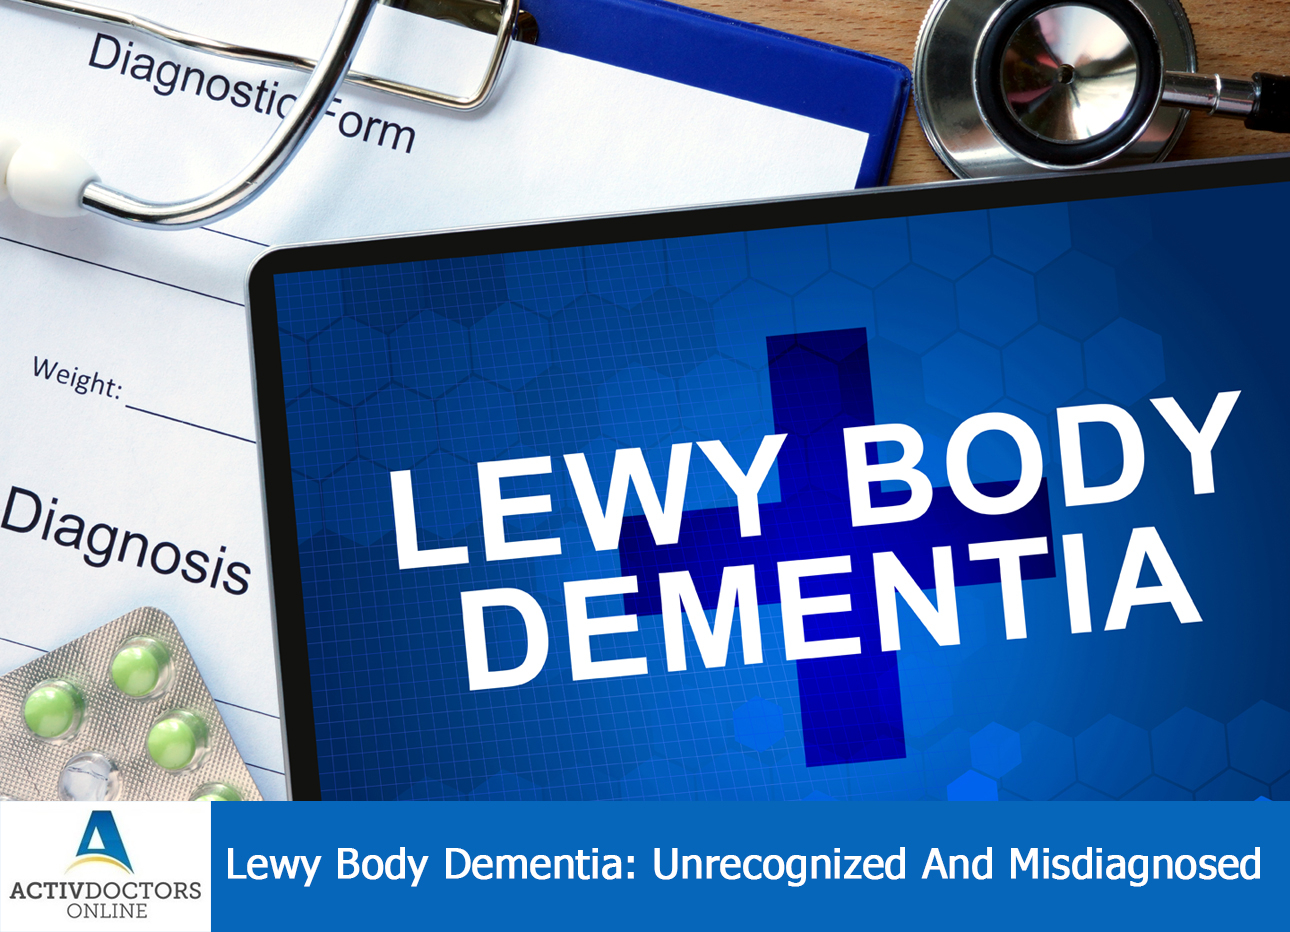 Lewy Body Dementia: Unrecognized And Misdiagnosed